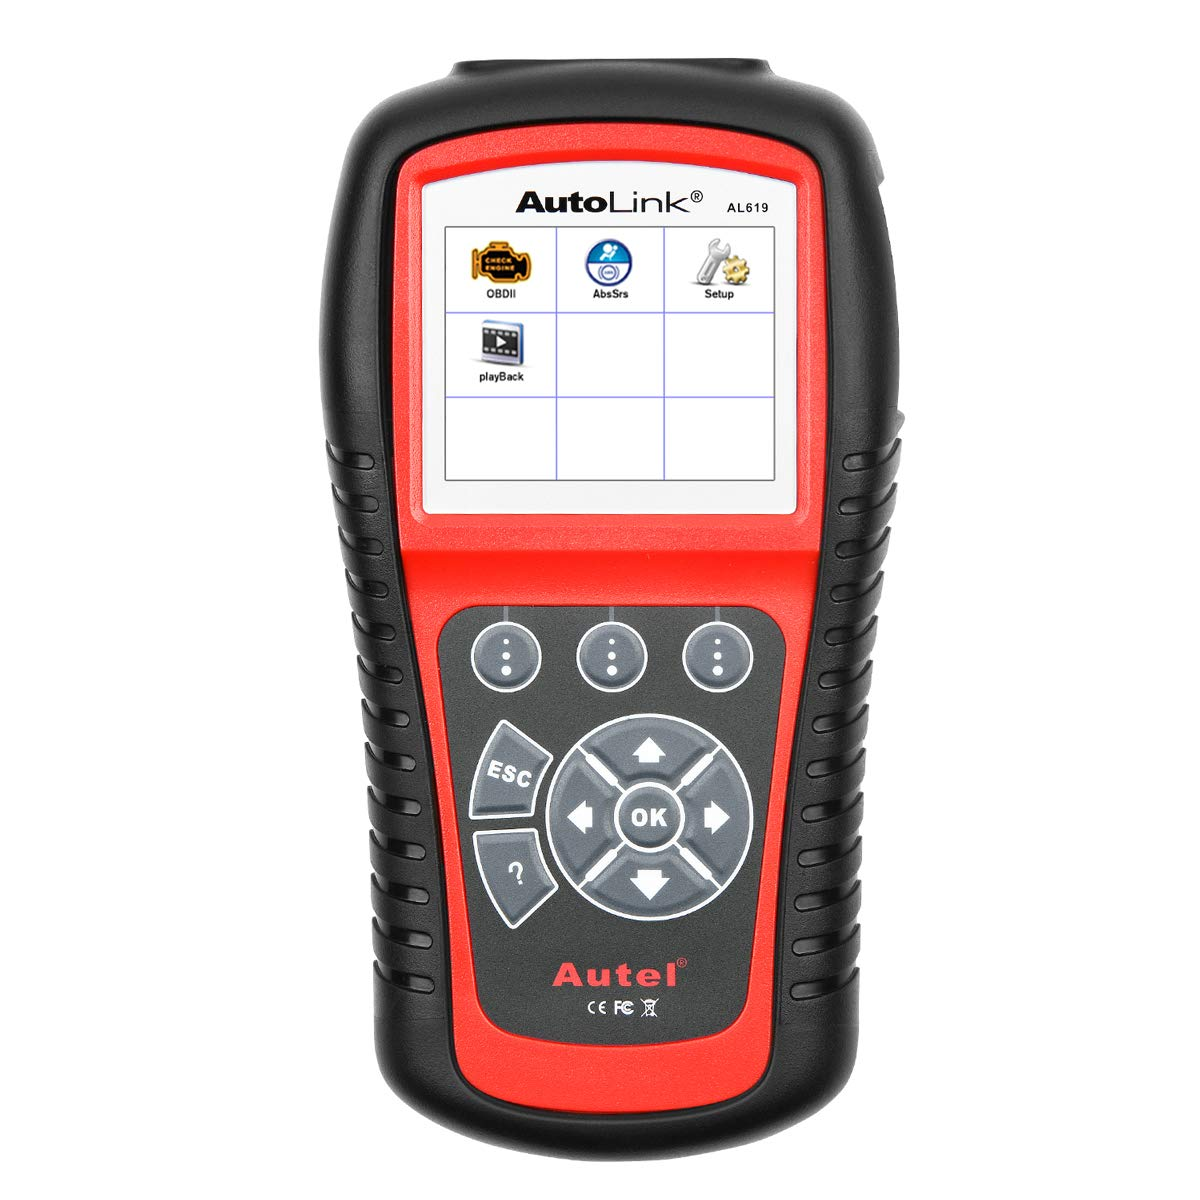 Autel AutoLink AL619 OBD2 Scanner ABS/SRS Diagnostic Scan Tool,Turns Off Engine Light (MIL) and ABS/SRS Warning Lights,Same Function as The ML619 Code Reader by Autel (Image #1)